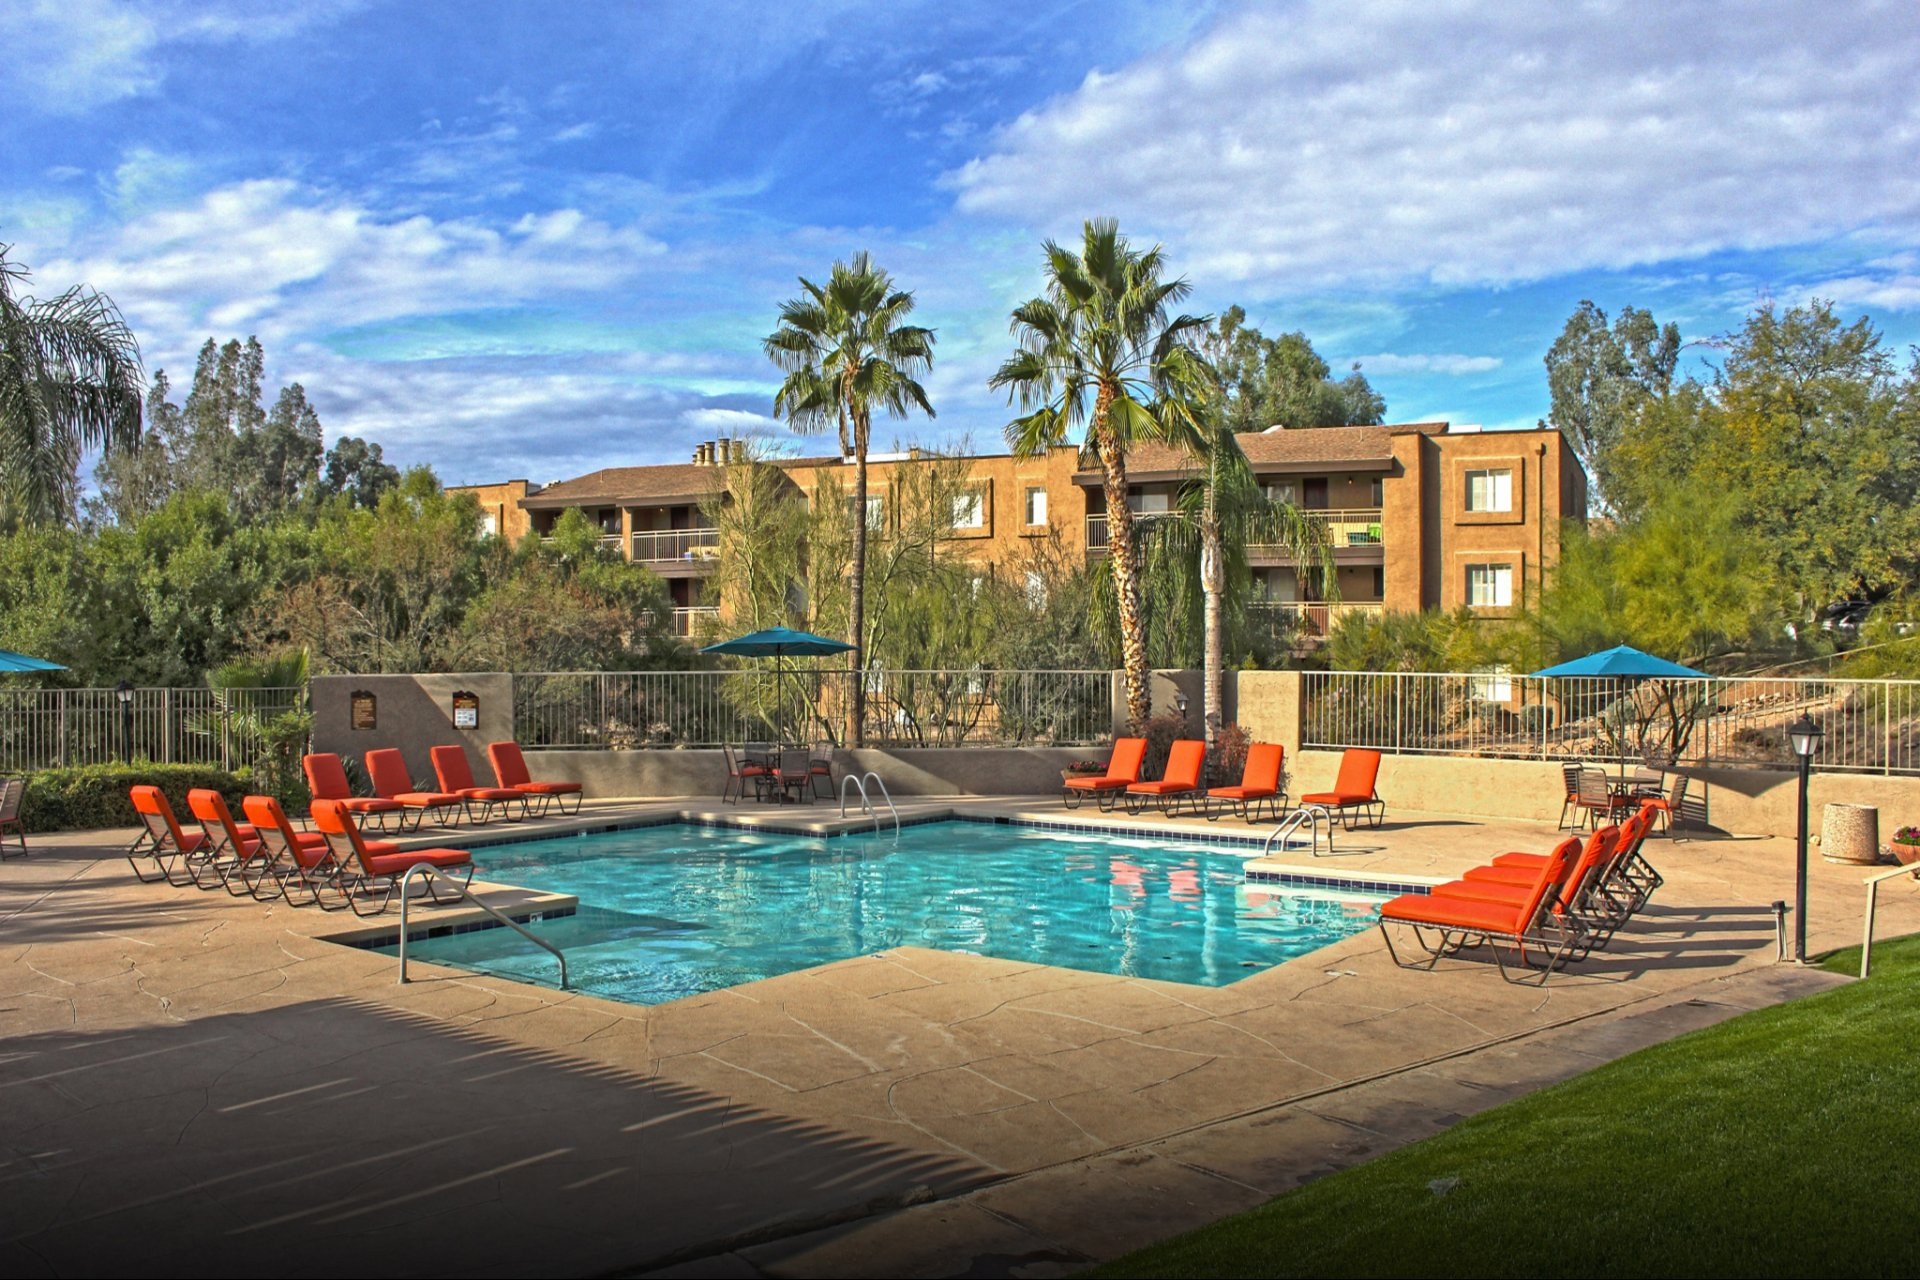 Sunrise Ridge Apartments Tucson, AZ pool, patio, exterior and landscaping